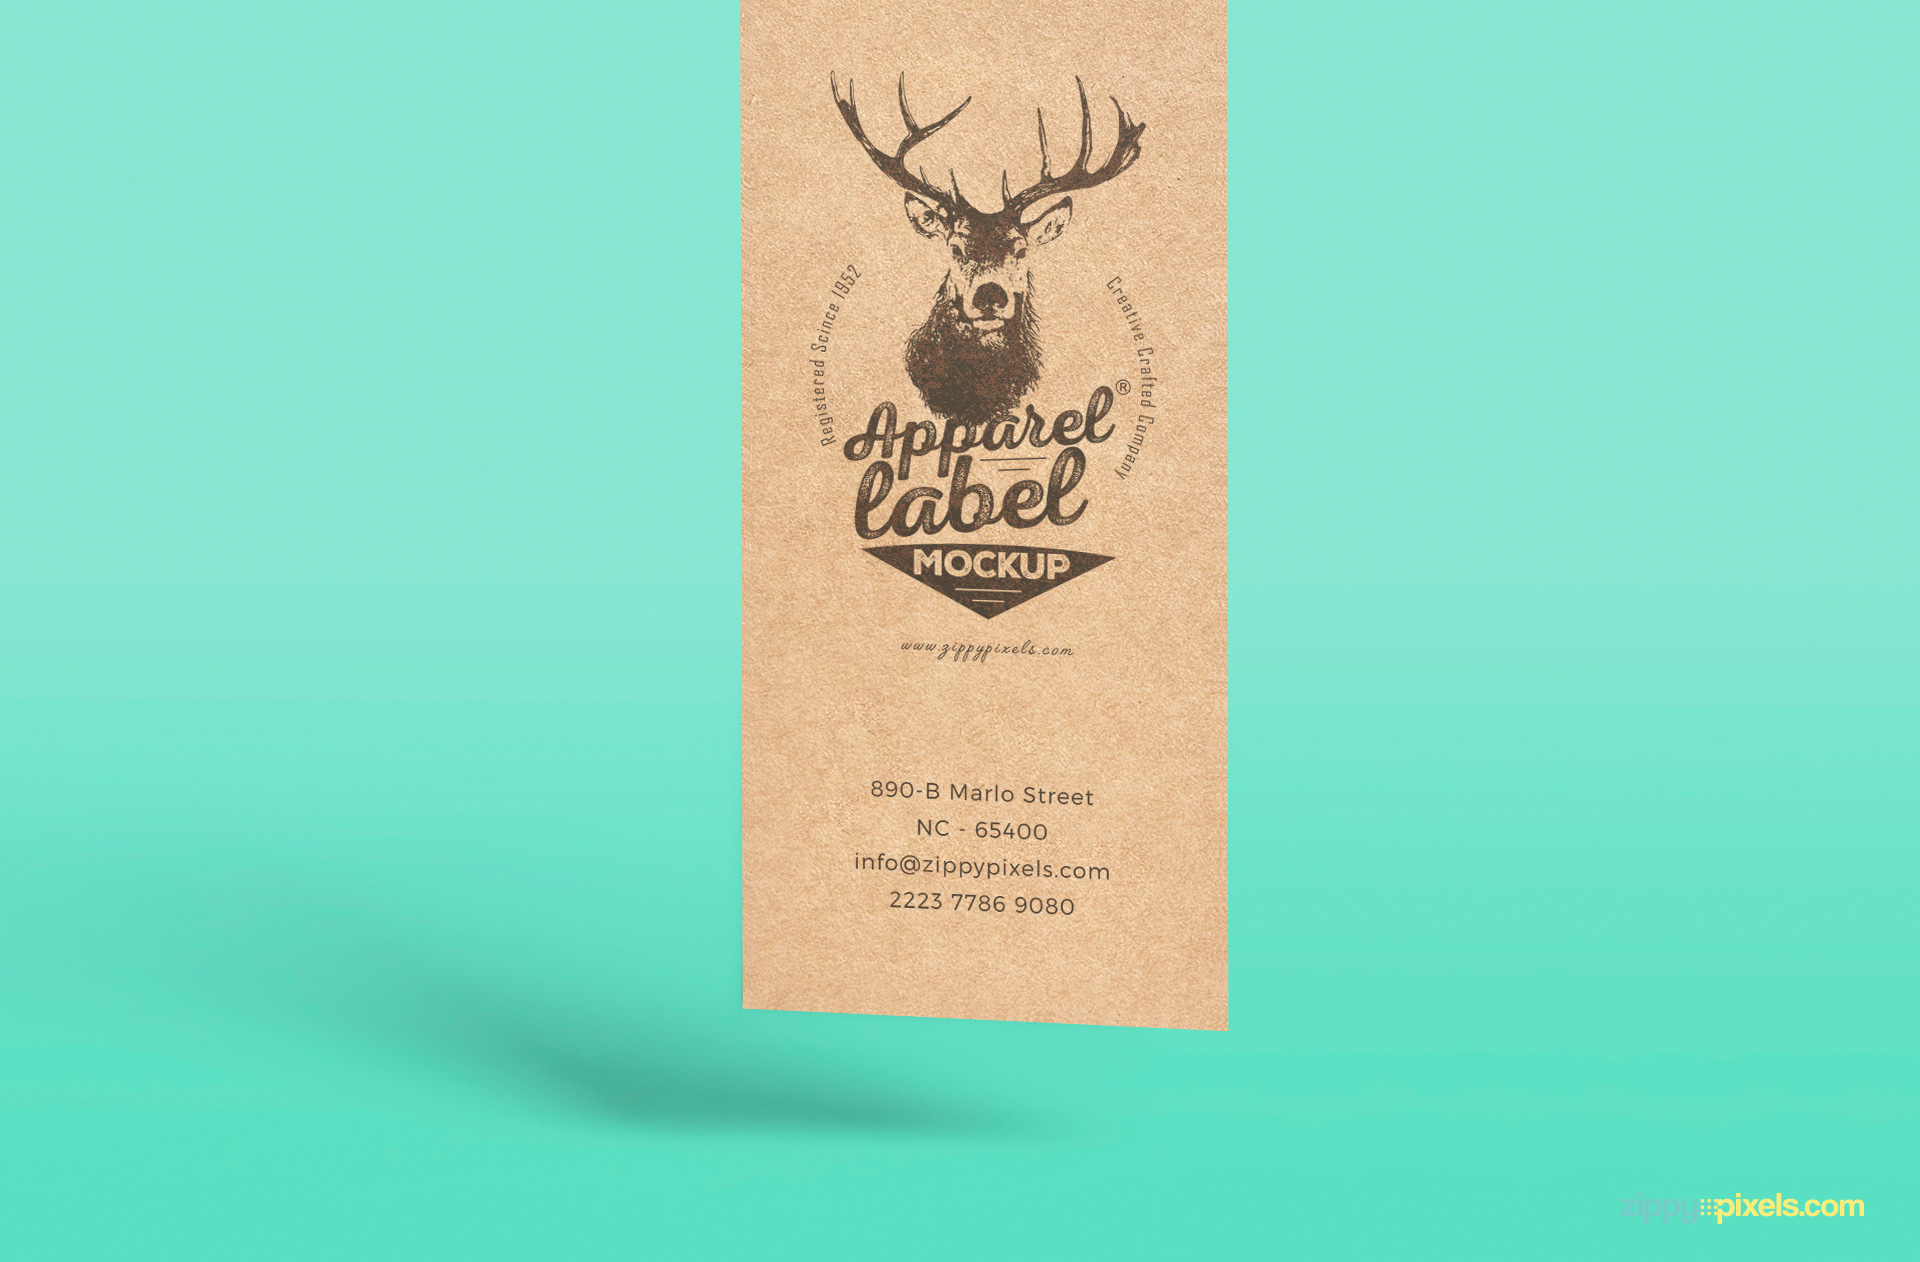 free clothing label mockup with changeable background color and adjustable shadows